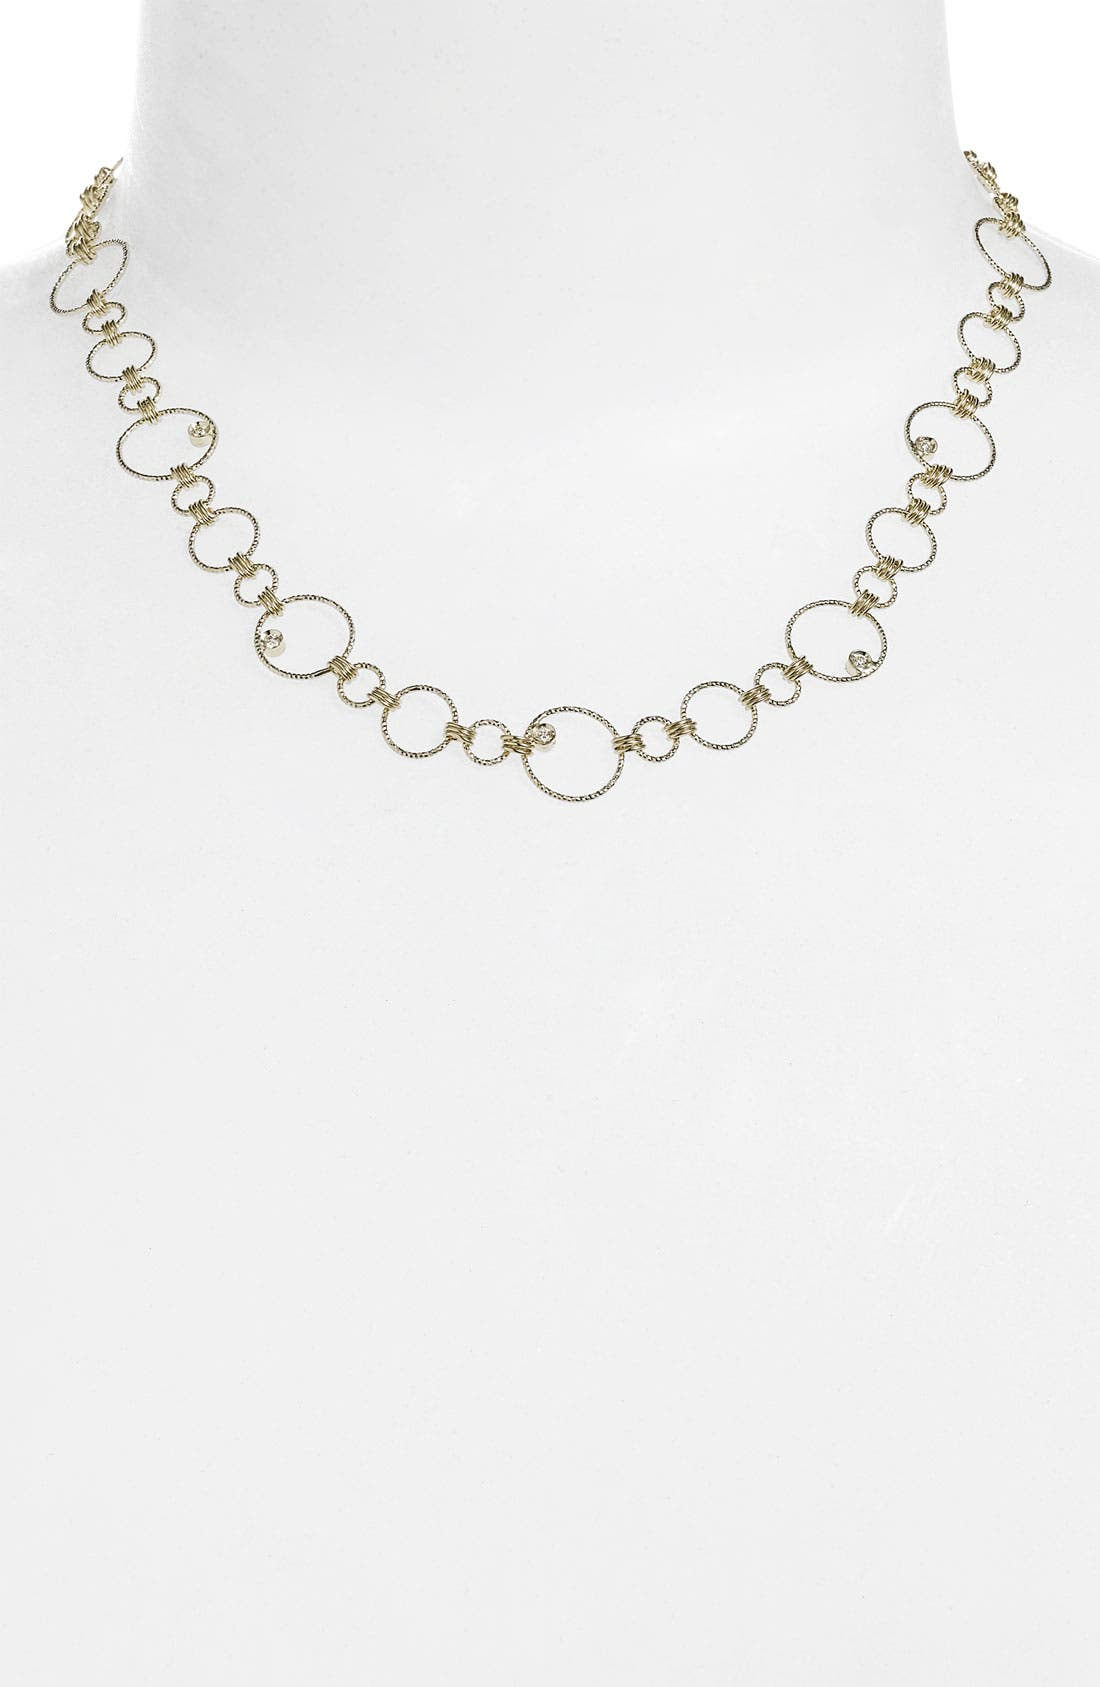 Main Image - Roberto Coin 'Moresque' Diamond Necklace